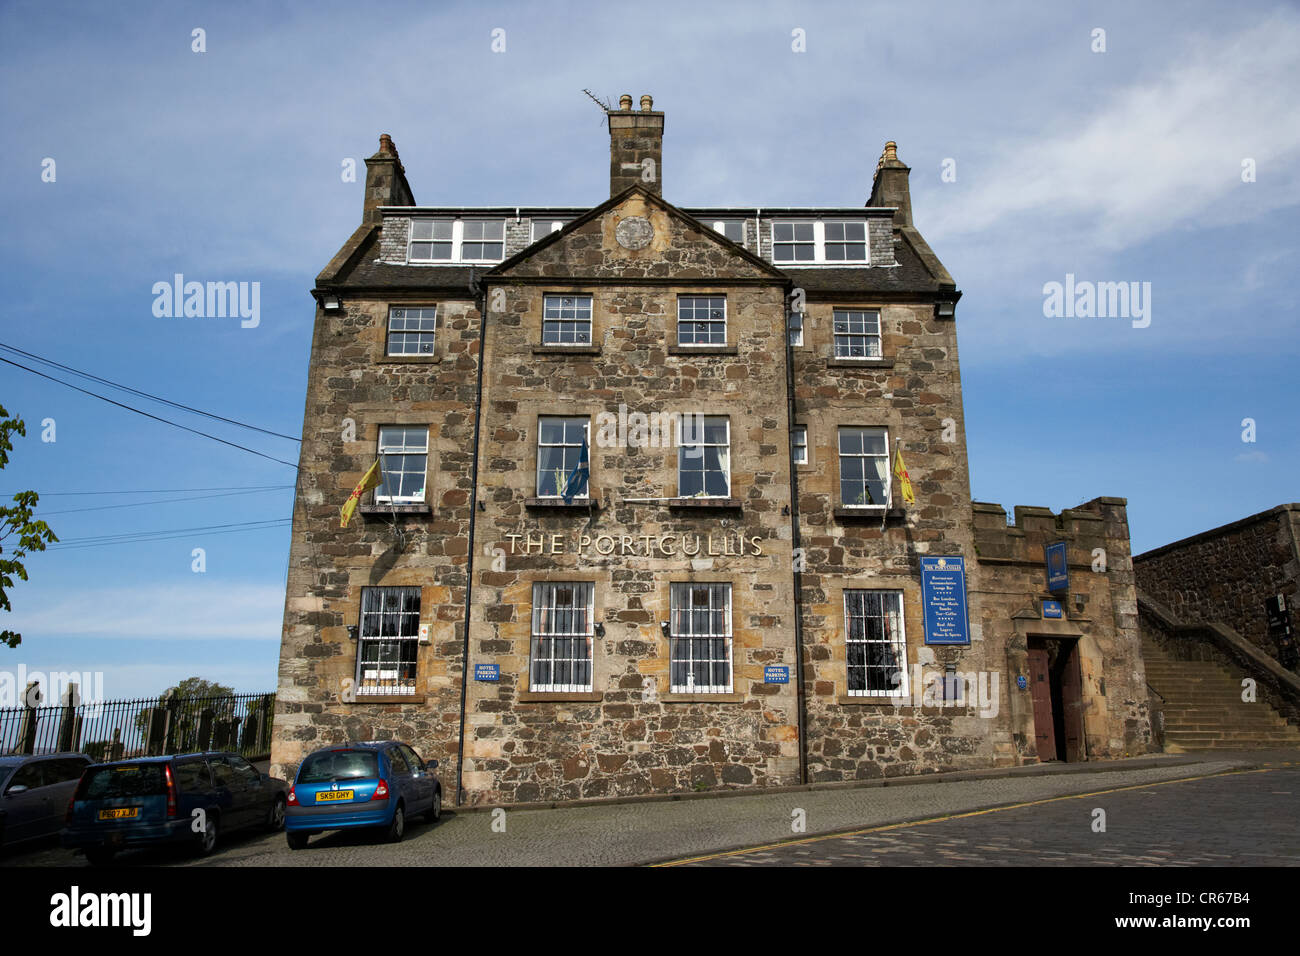 the portcullis hotel formerly the old grammar school in the historic old town of stirling scotland uk - Stock Image